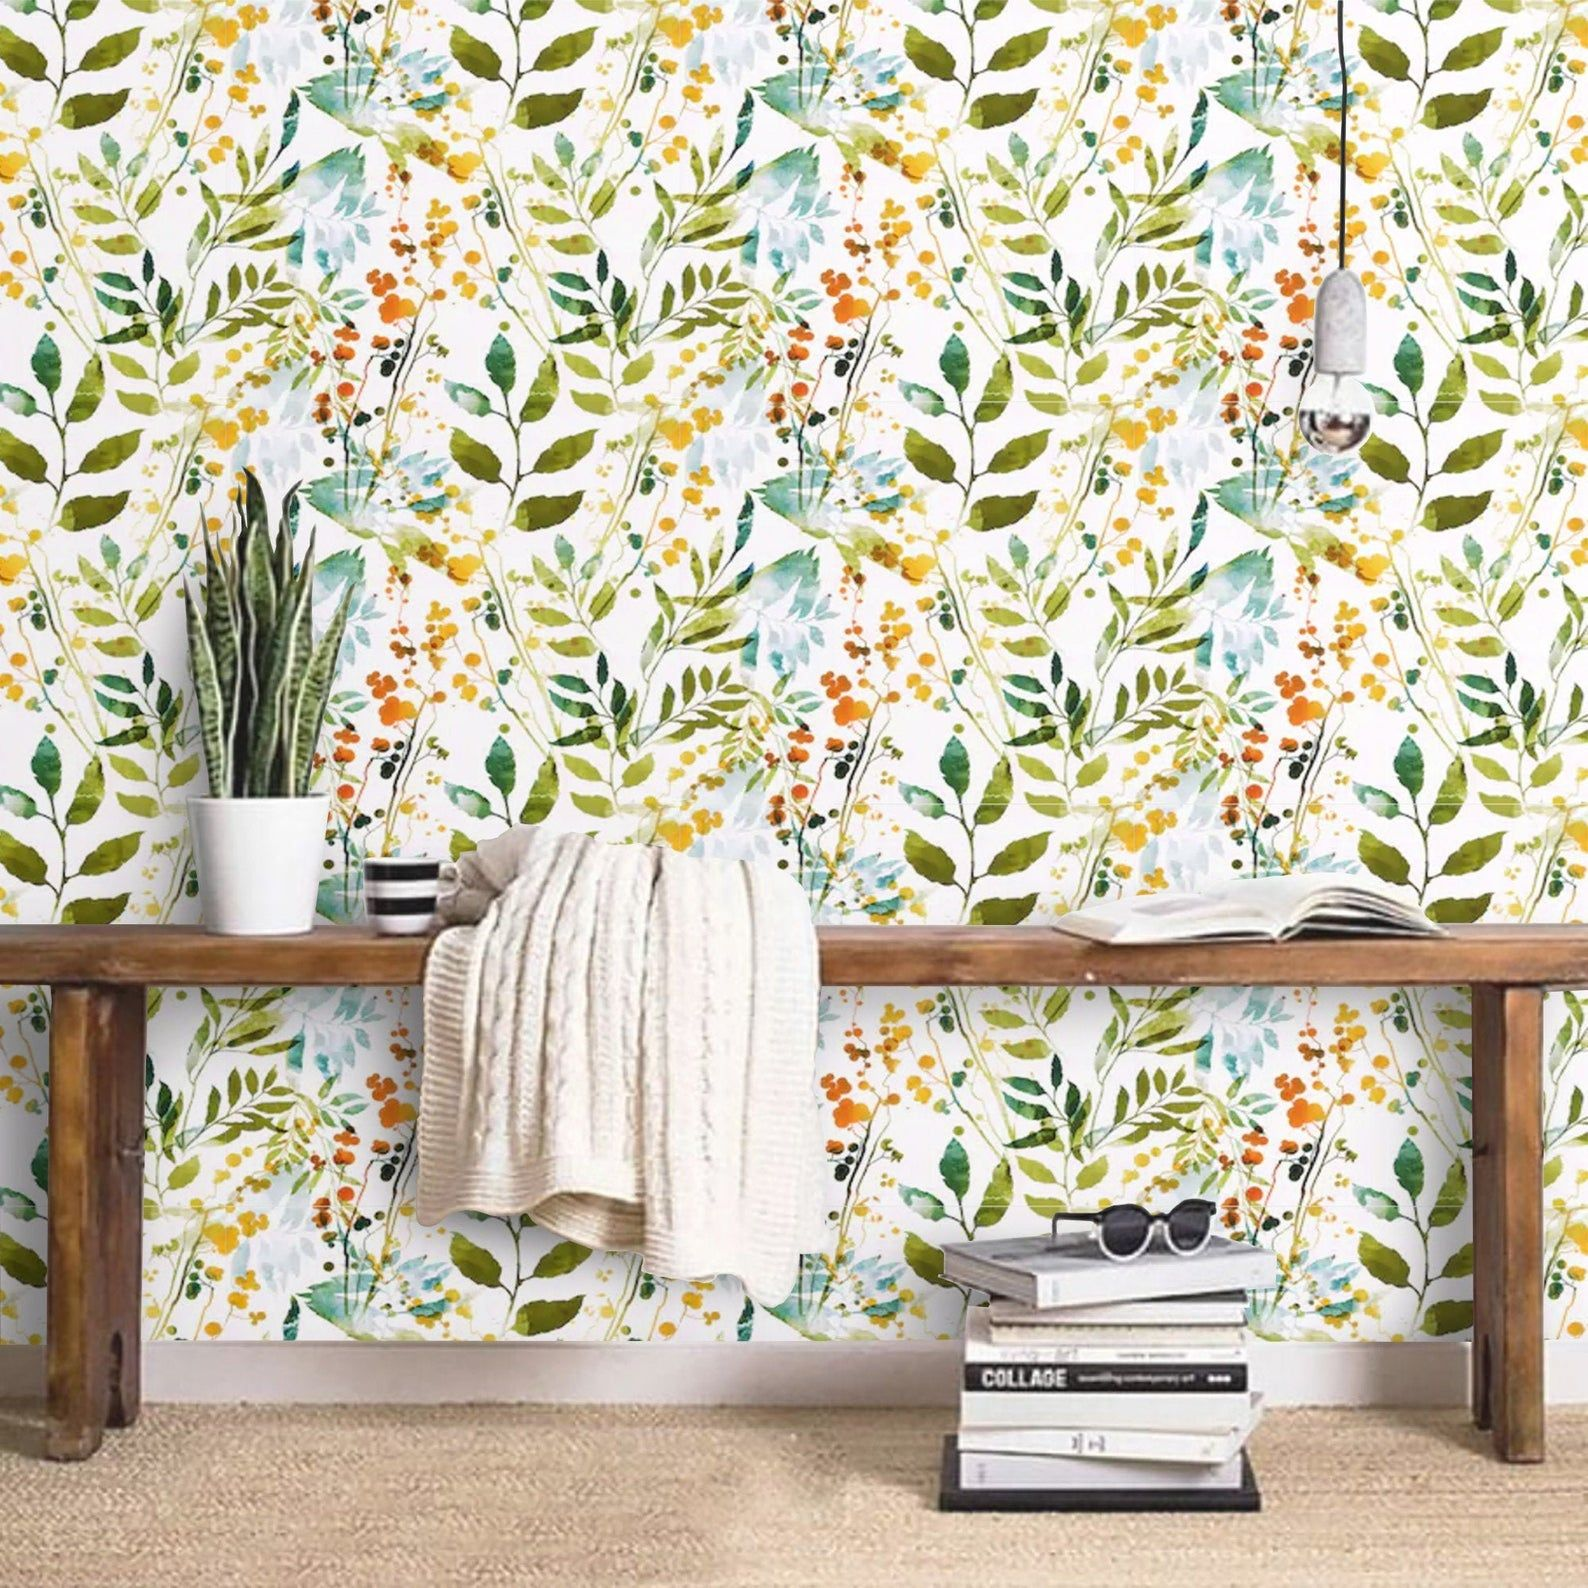 Wallpaper Watercolor Spring Garden Peel And Stick Green Leaves Etsy Peal And Stick Wallpaper Spring Garden Removable Wall